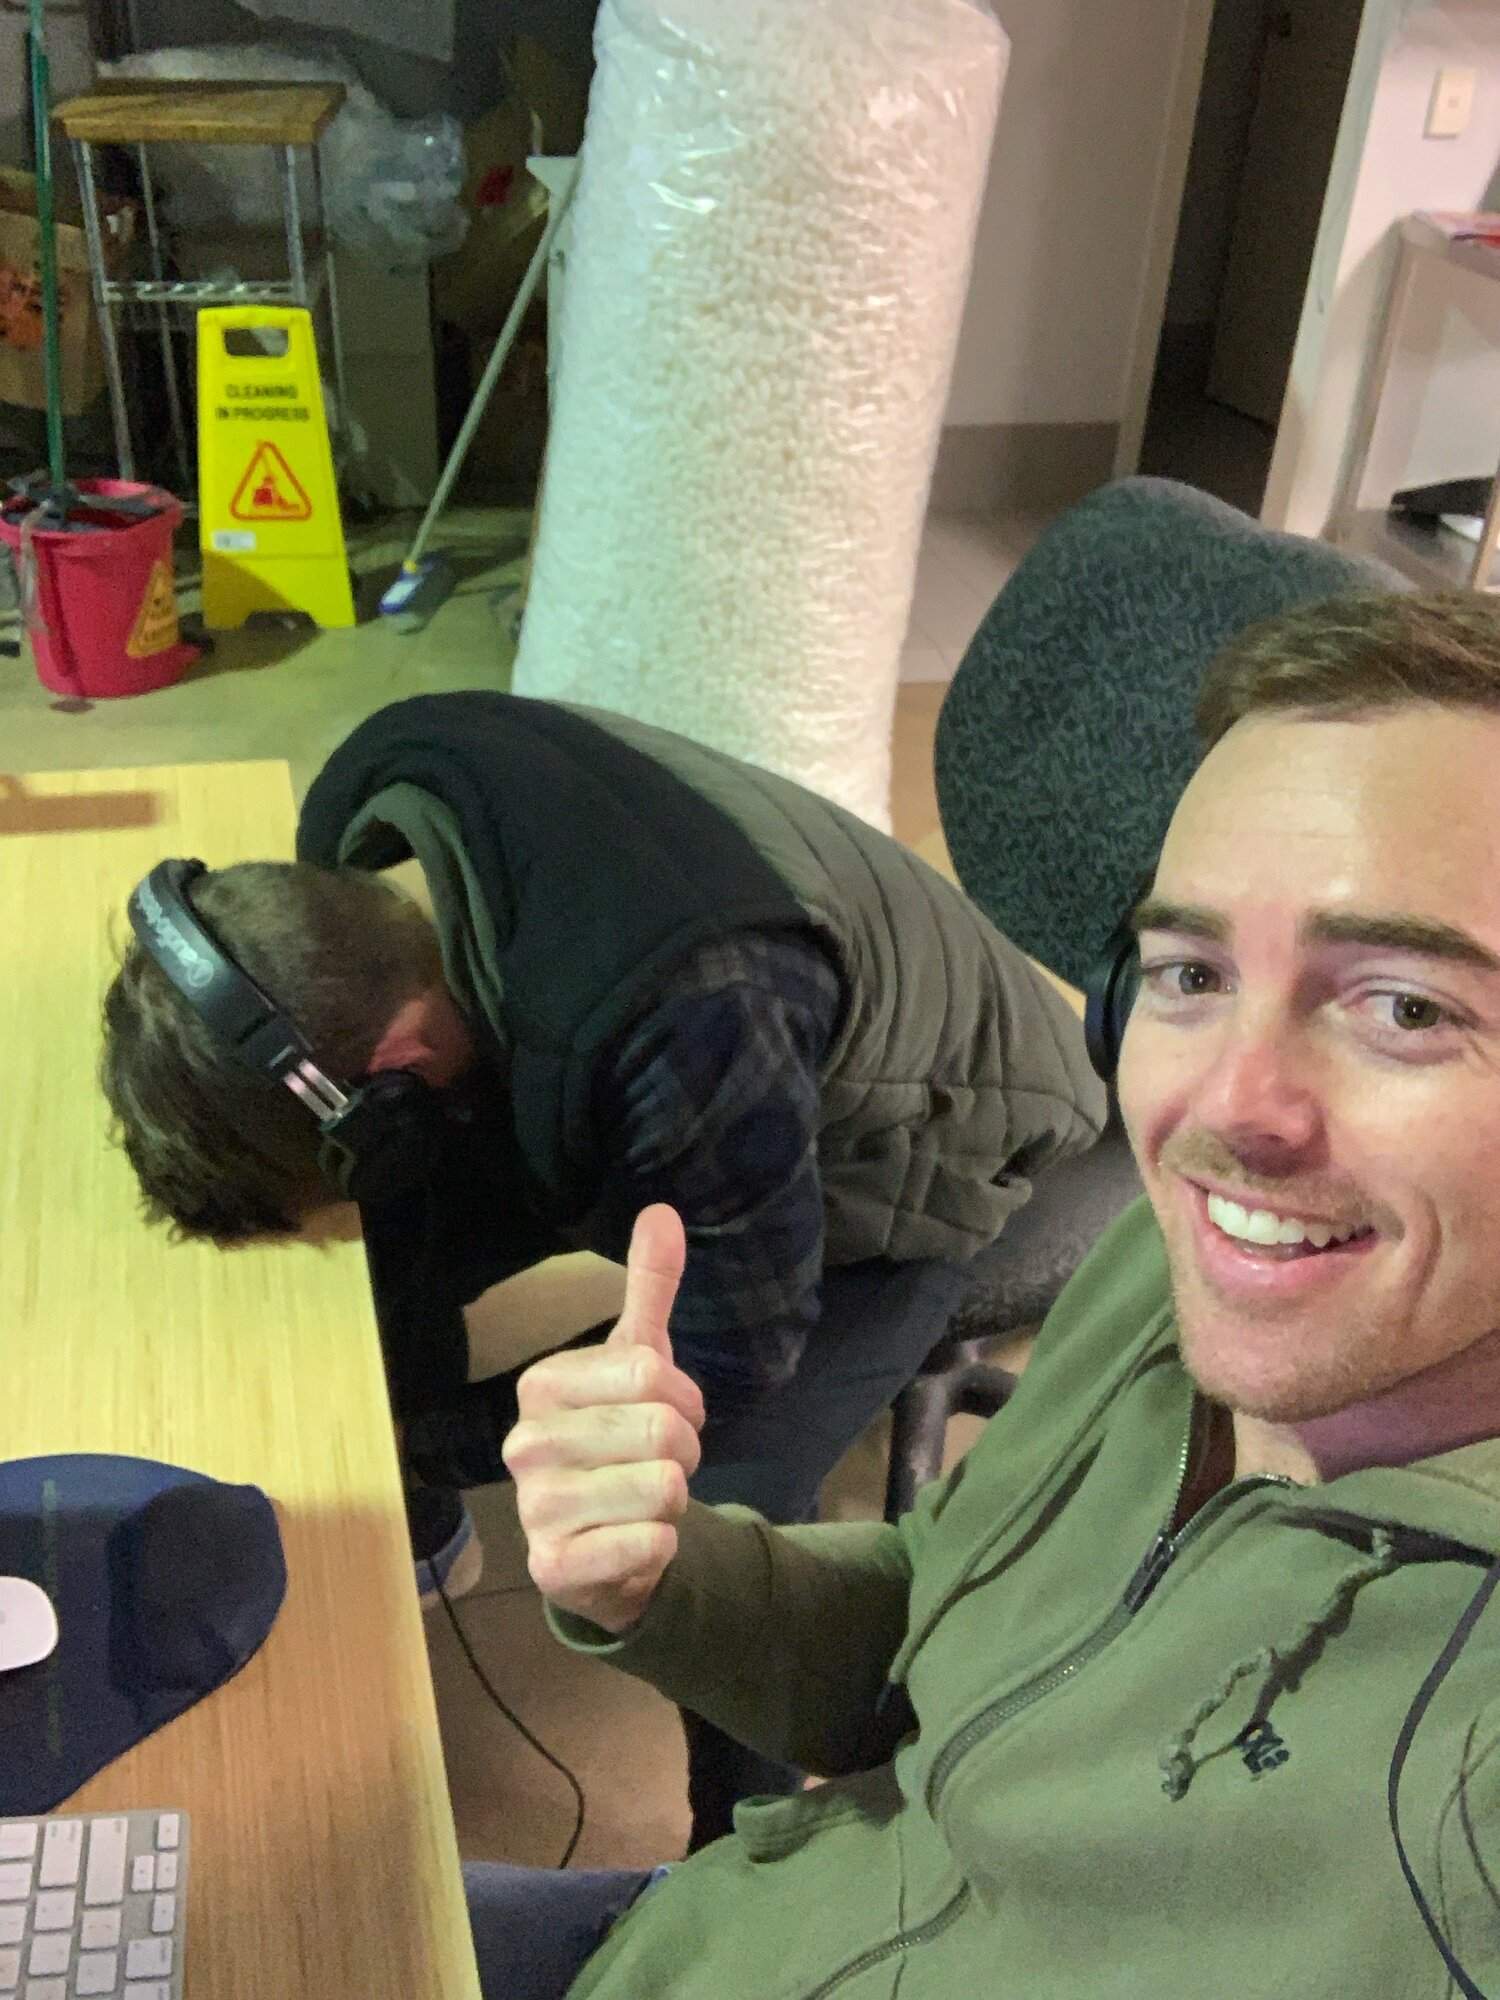 At the factory, editing and listening to recordings for an episode. Tom resting his head.